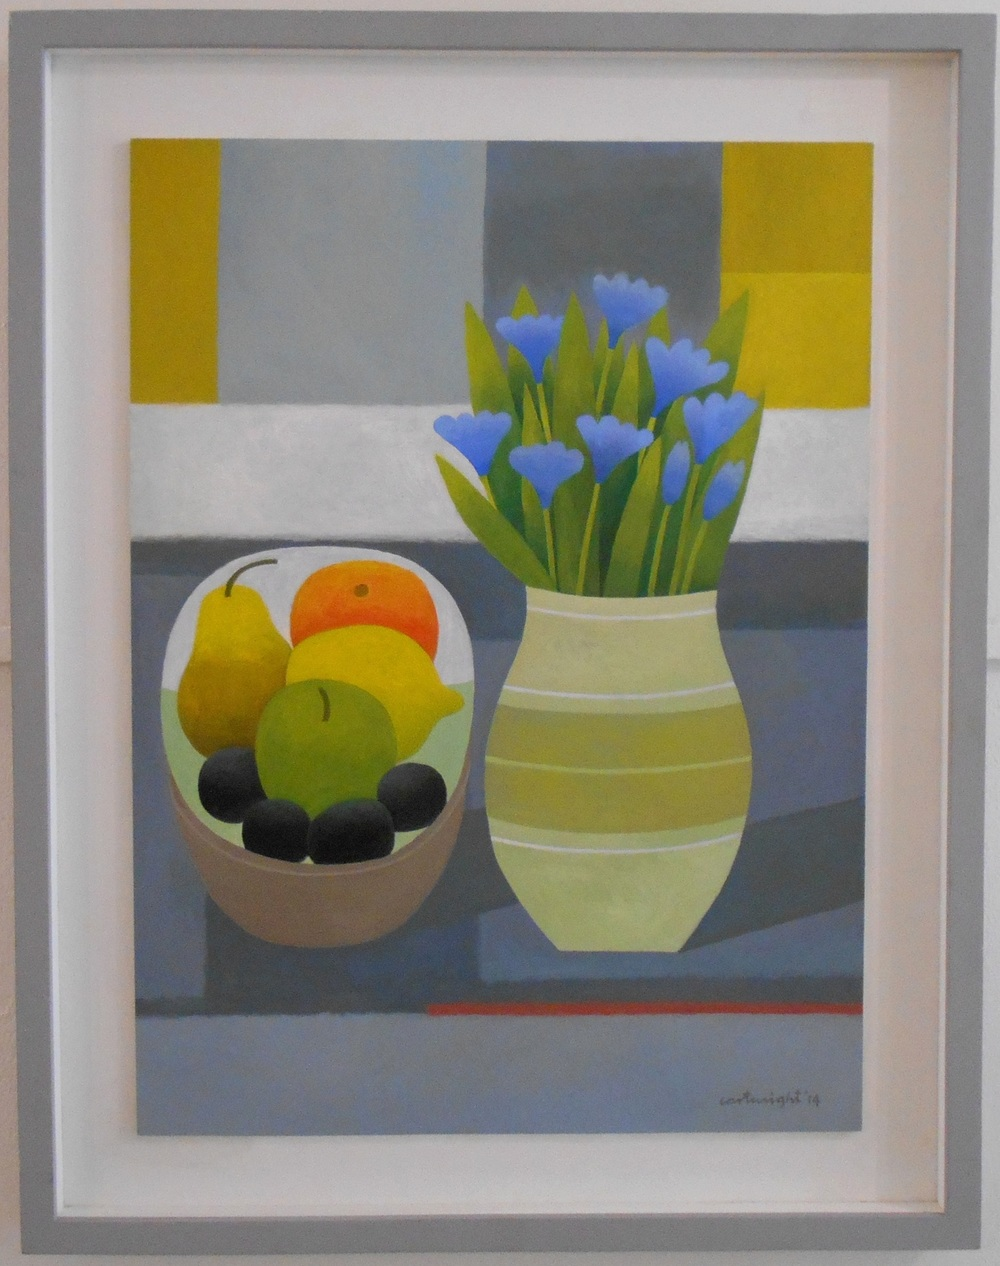 Still Life with Blue Flowers   oil on board   46 x 63 cm  SOLD